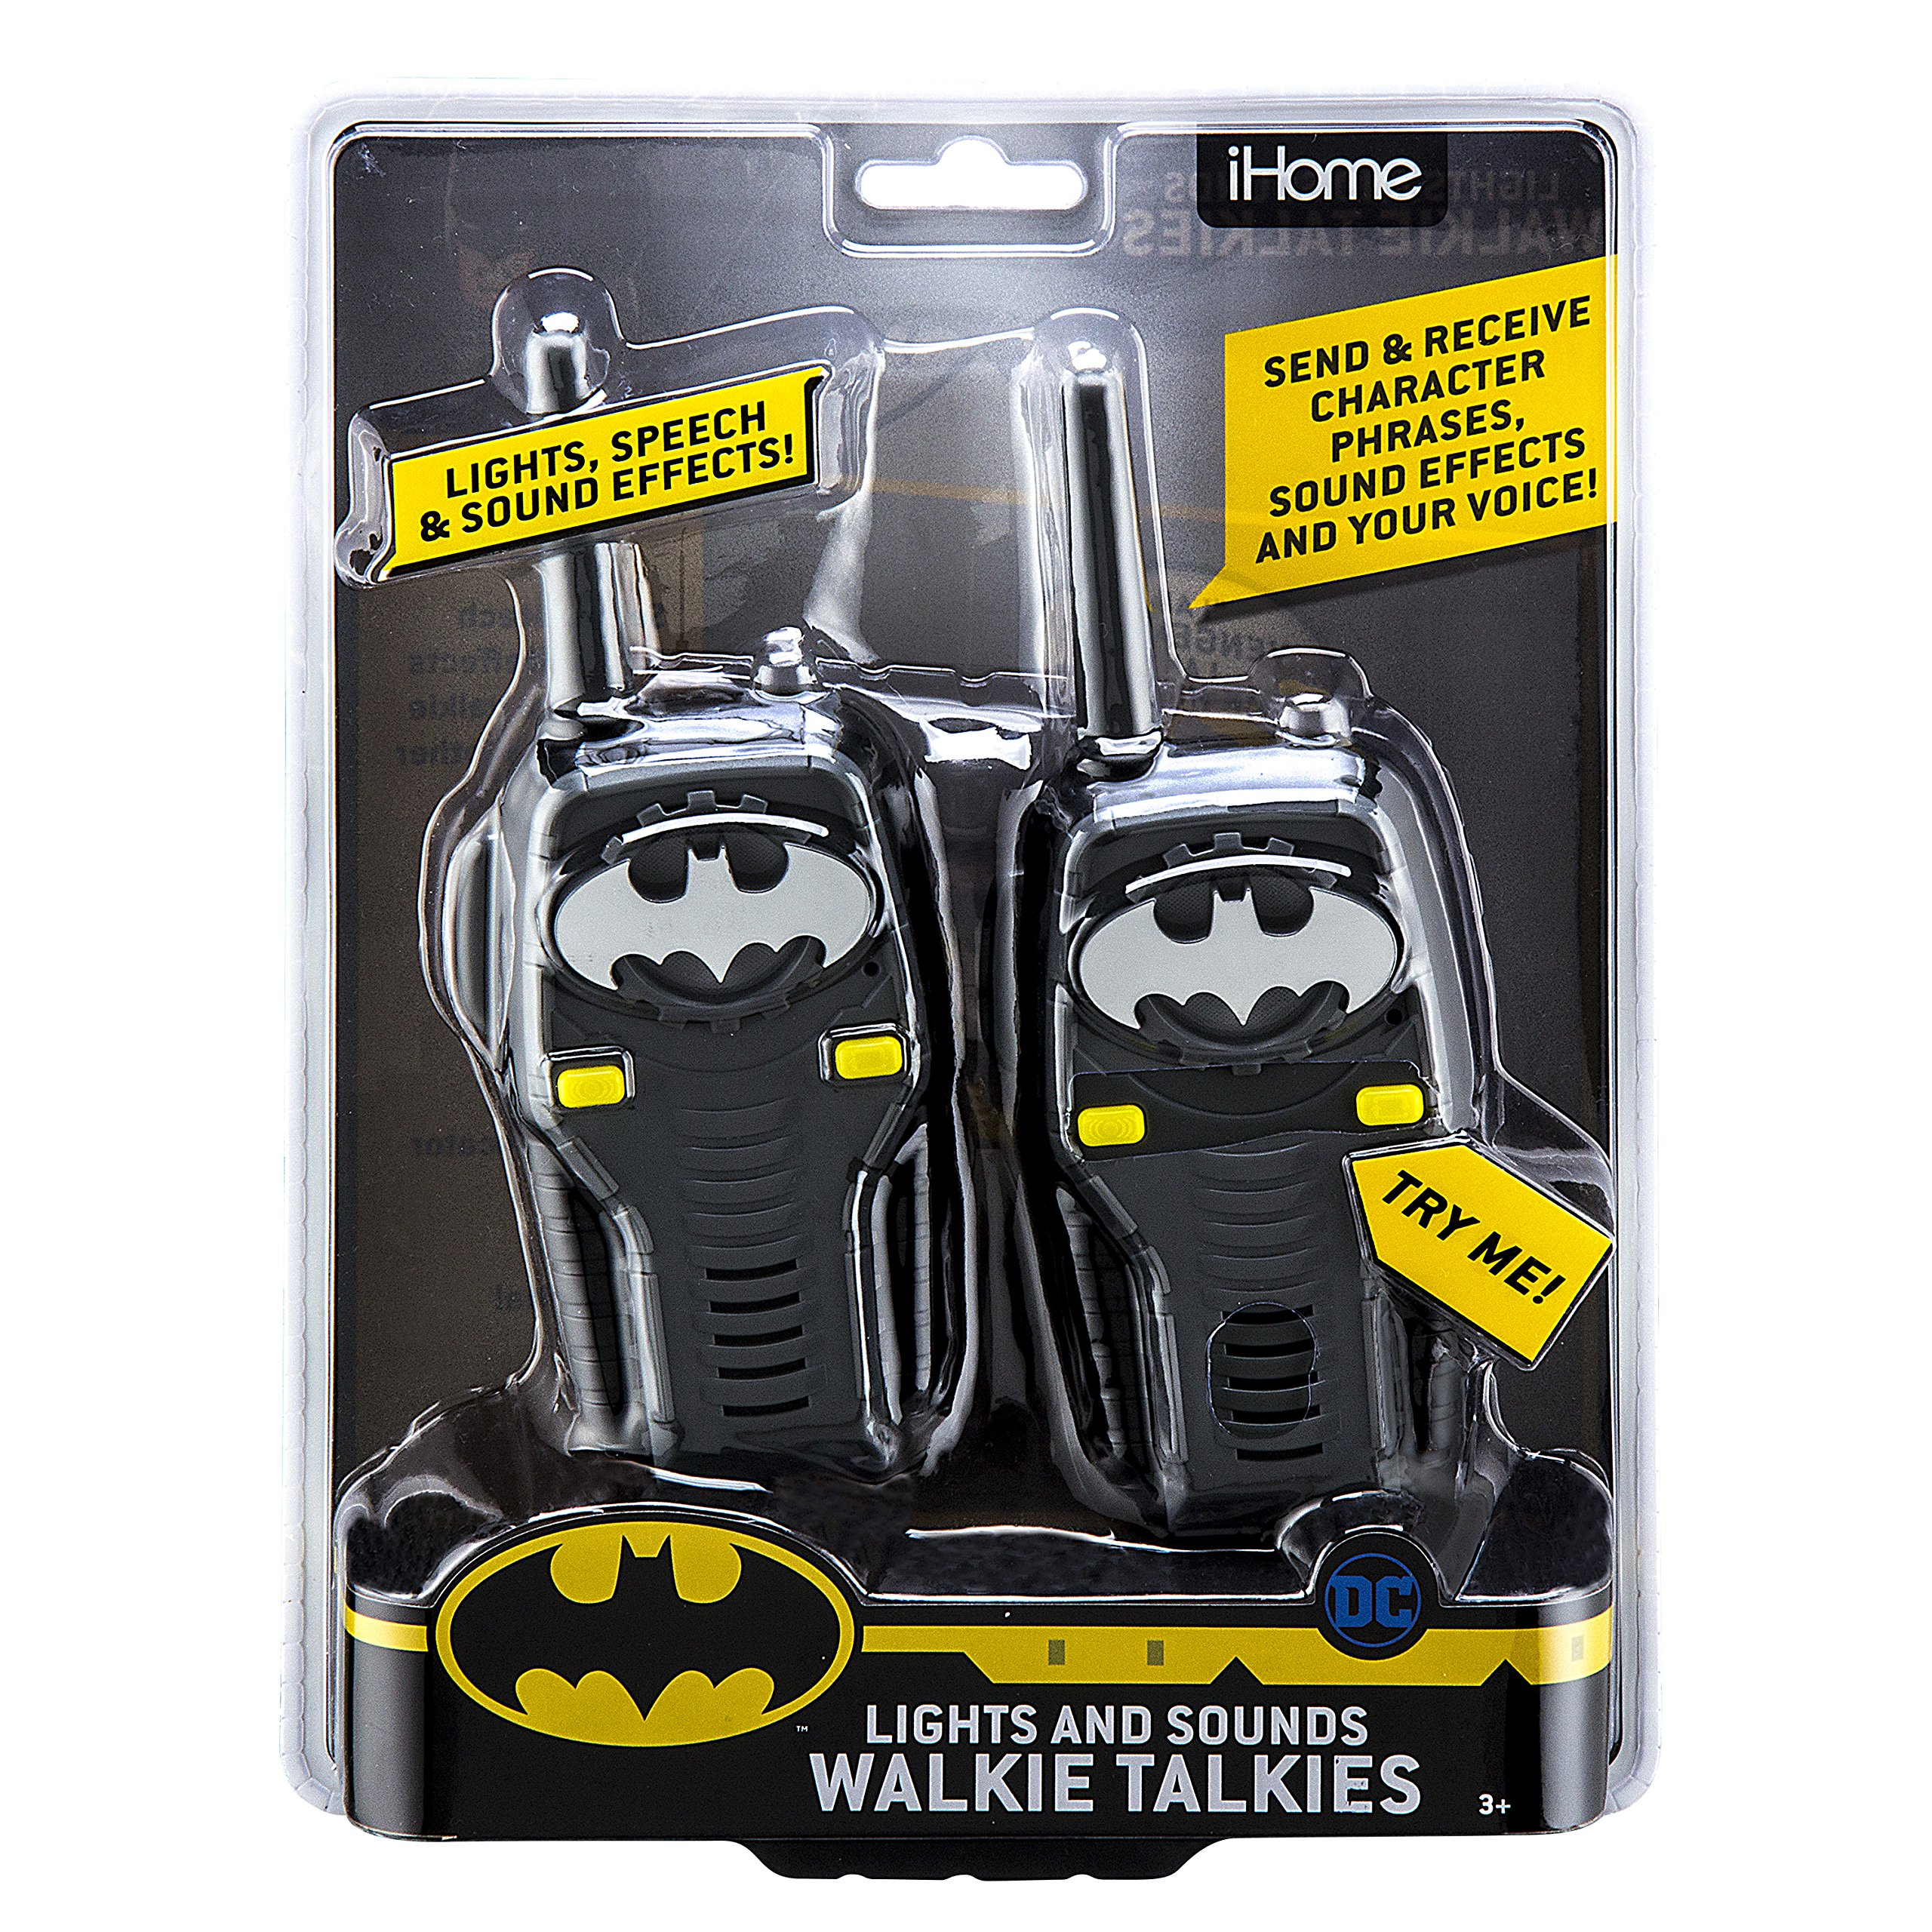 Batman FRS Walkie Talkies for Kids with Lights and Sounds Kid Friendly Easy to Use by eKids (Image #5)